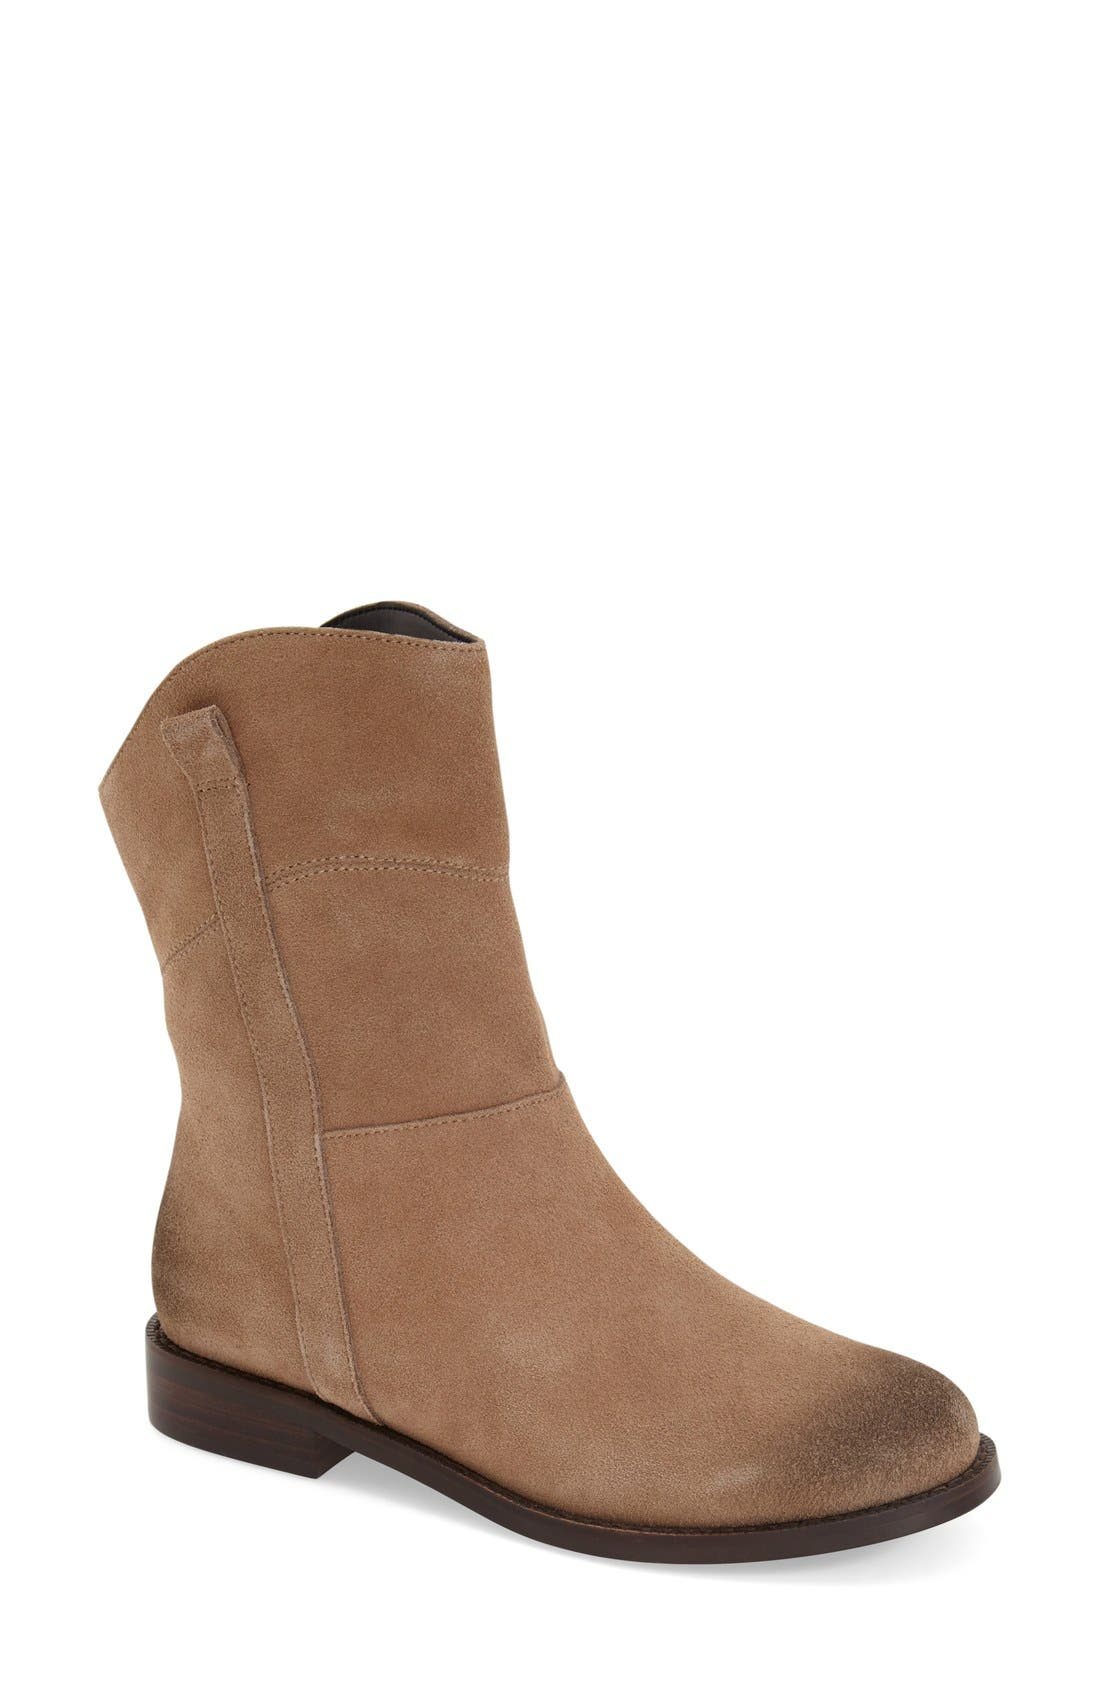 Alternate Image 1 Selected - Sole Society 'Galen' Boot (Women)